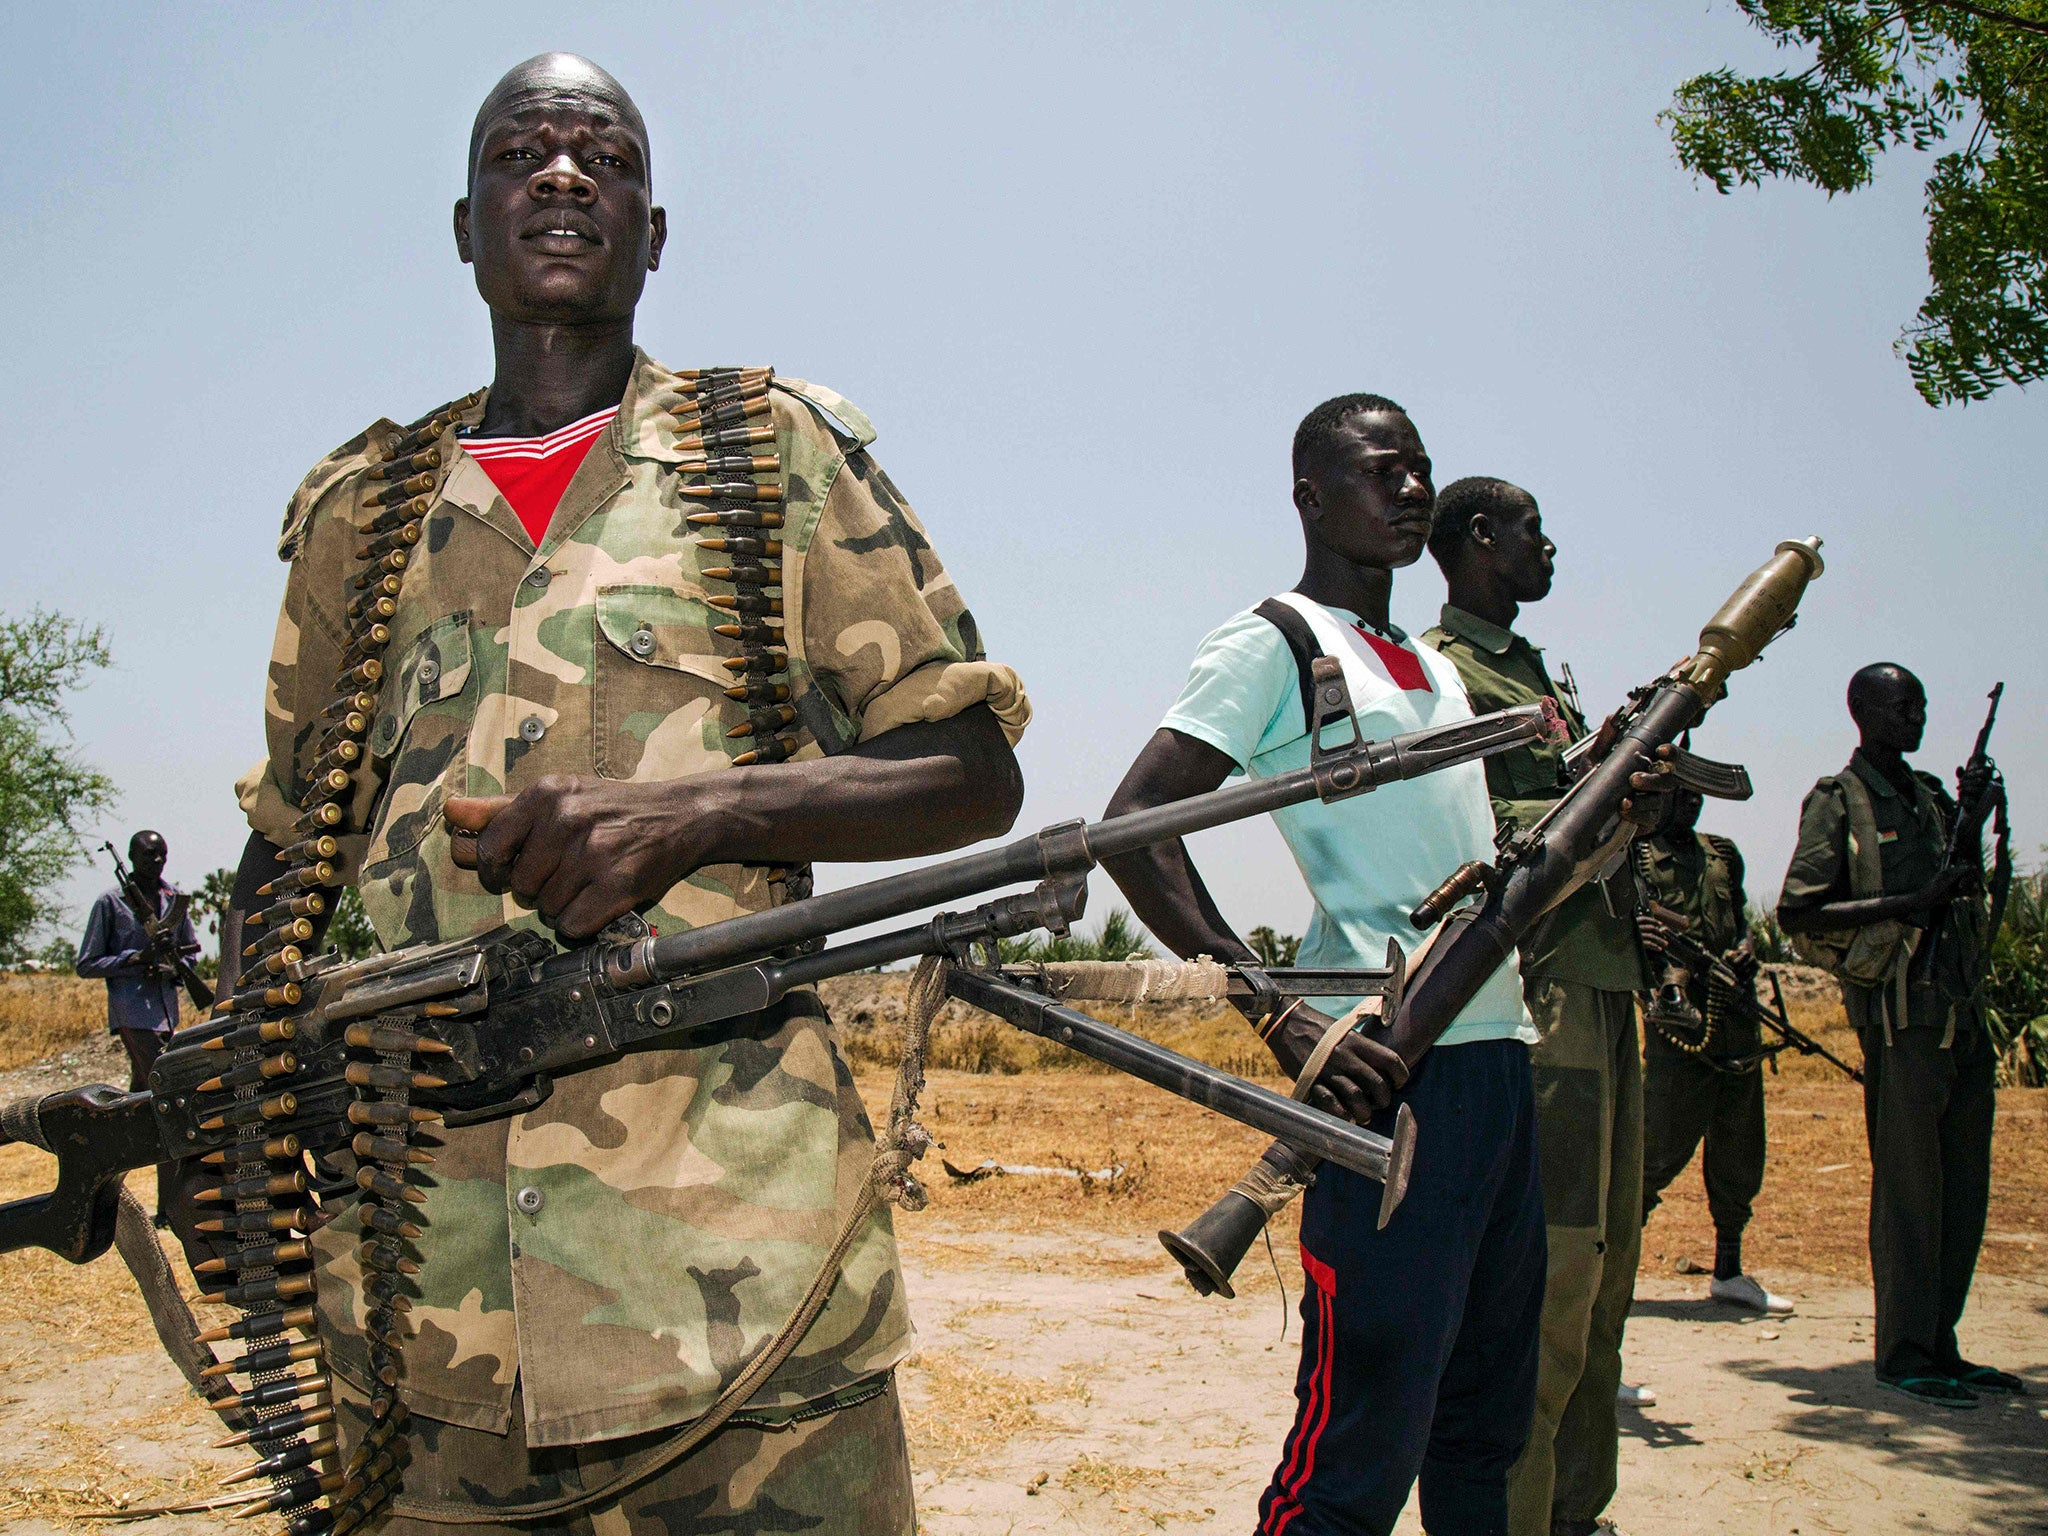 dating south sudan Oil-rich south sudan gained independence from neighbouring sudan in 2011, but slid into civil war in december 2013 more than 4 million people, a third of the population, have been displaced by violence.